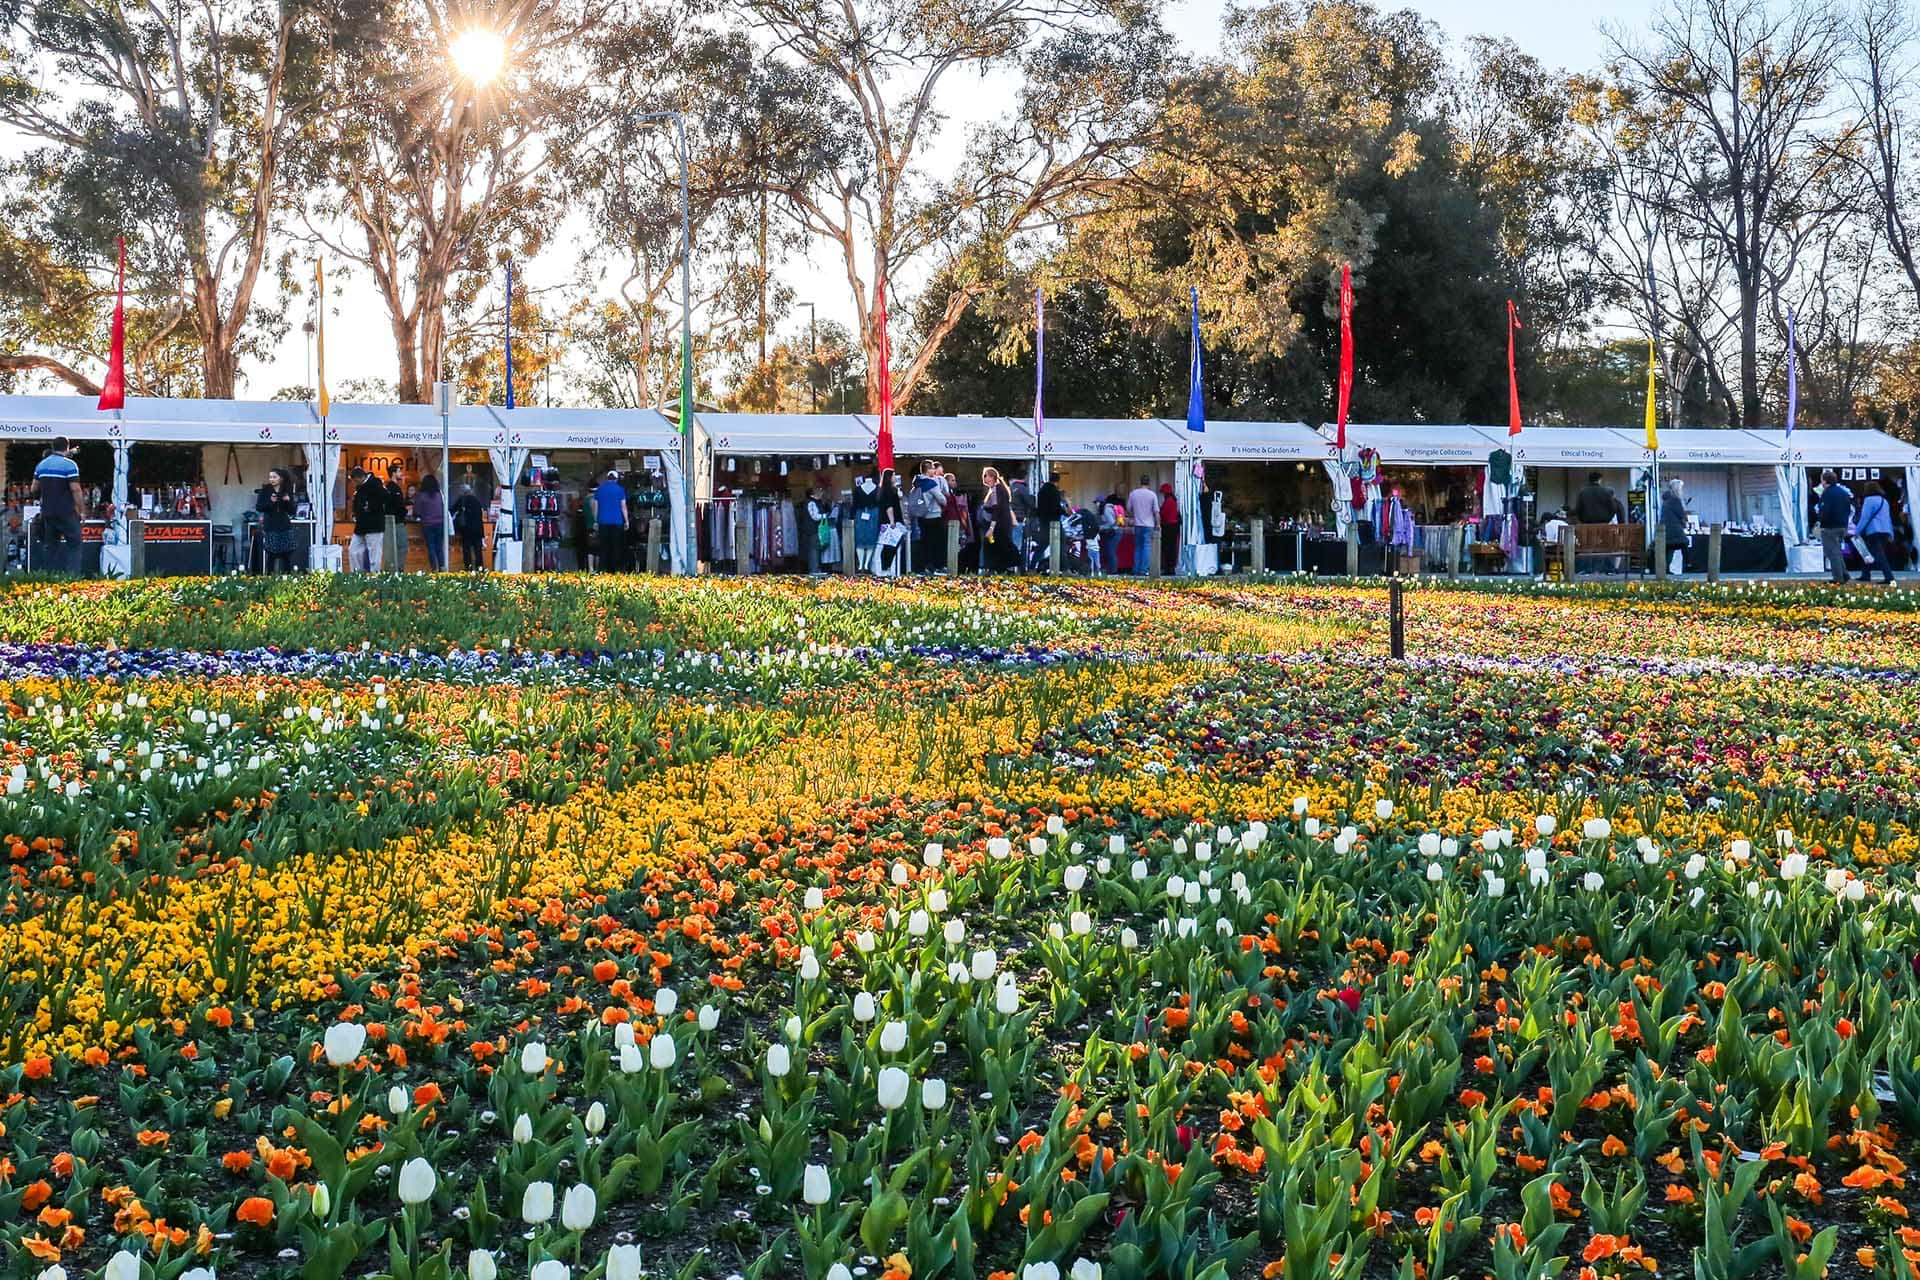 10 Reasons To Visit Canberra Floriade Flower Festival (plus other secret gardens)